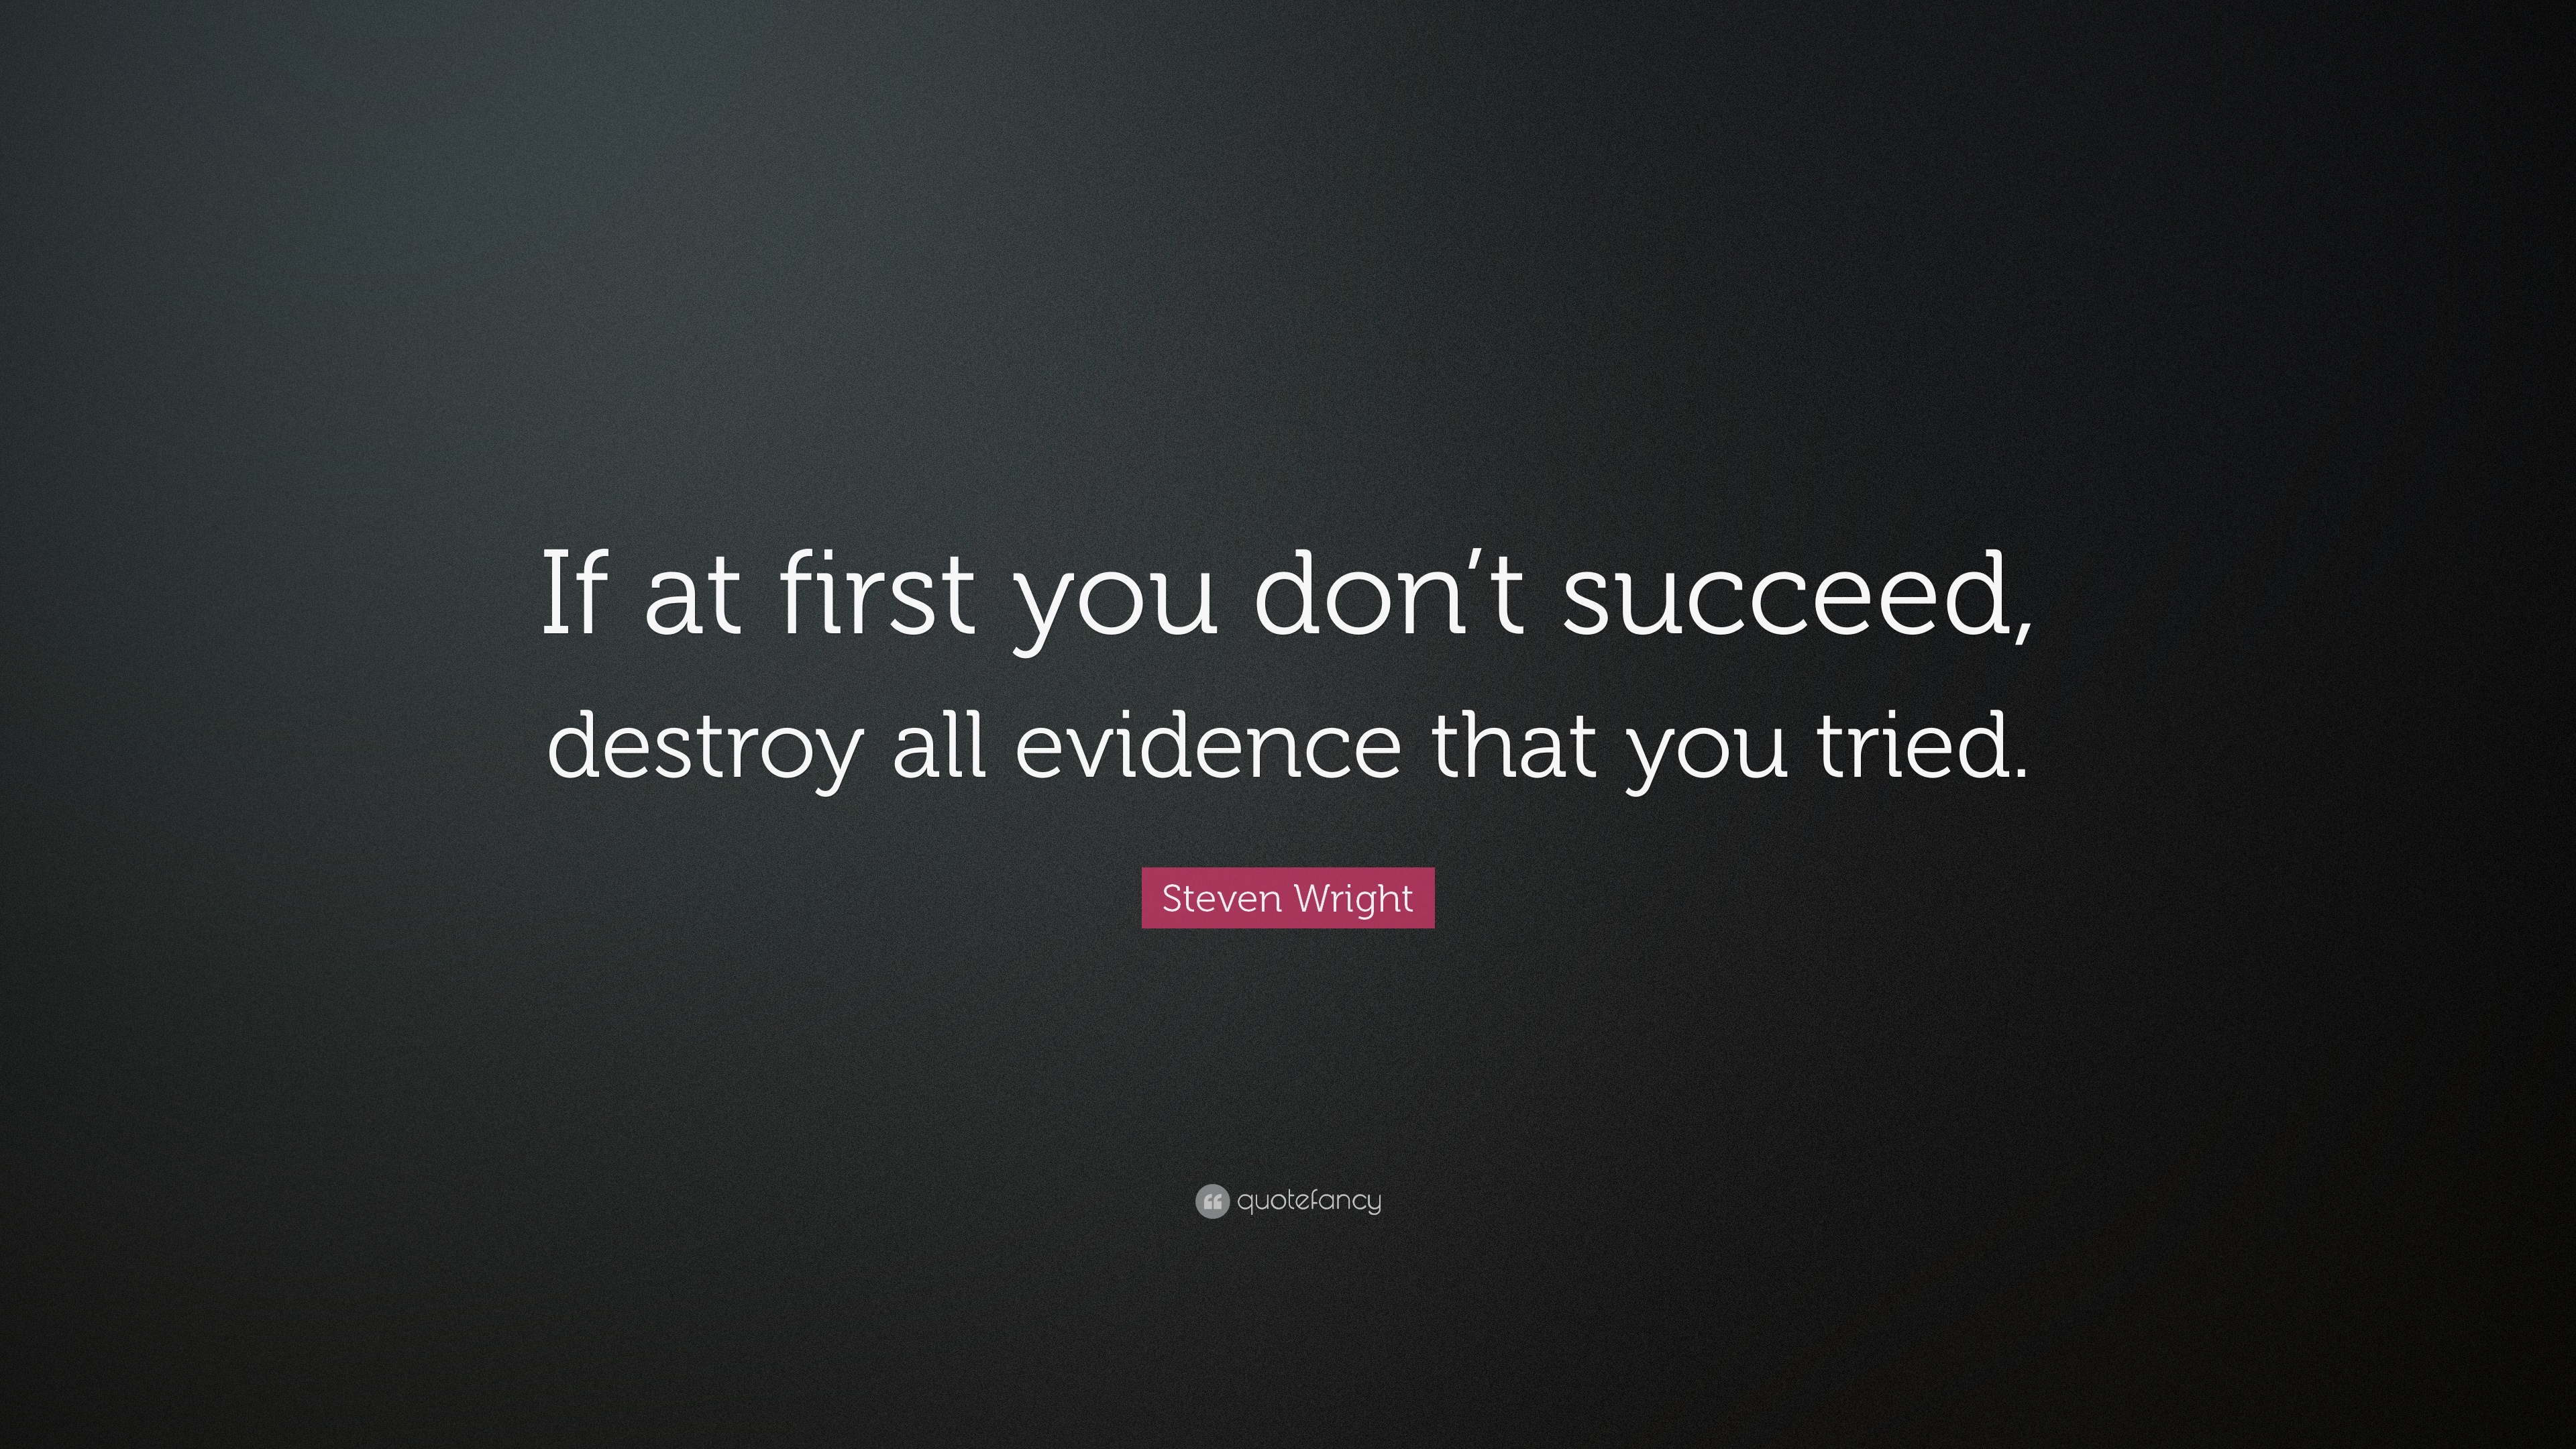 Funny Quotes If At First You Dont Succeed Destroy All Evidence